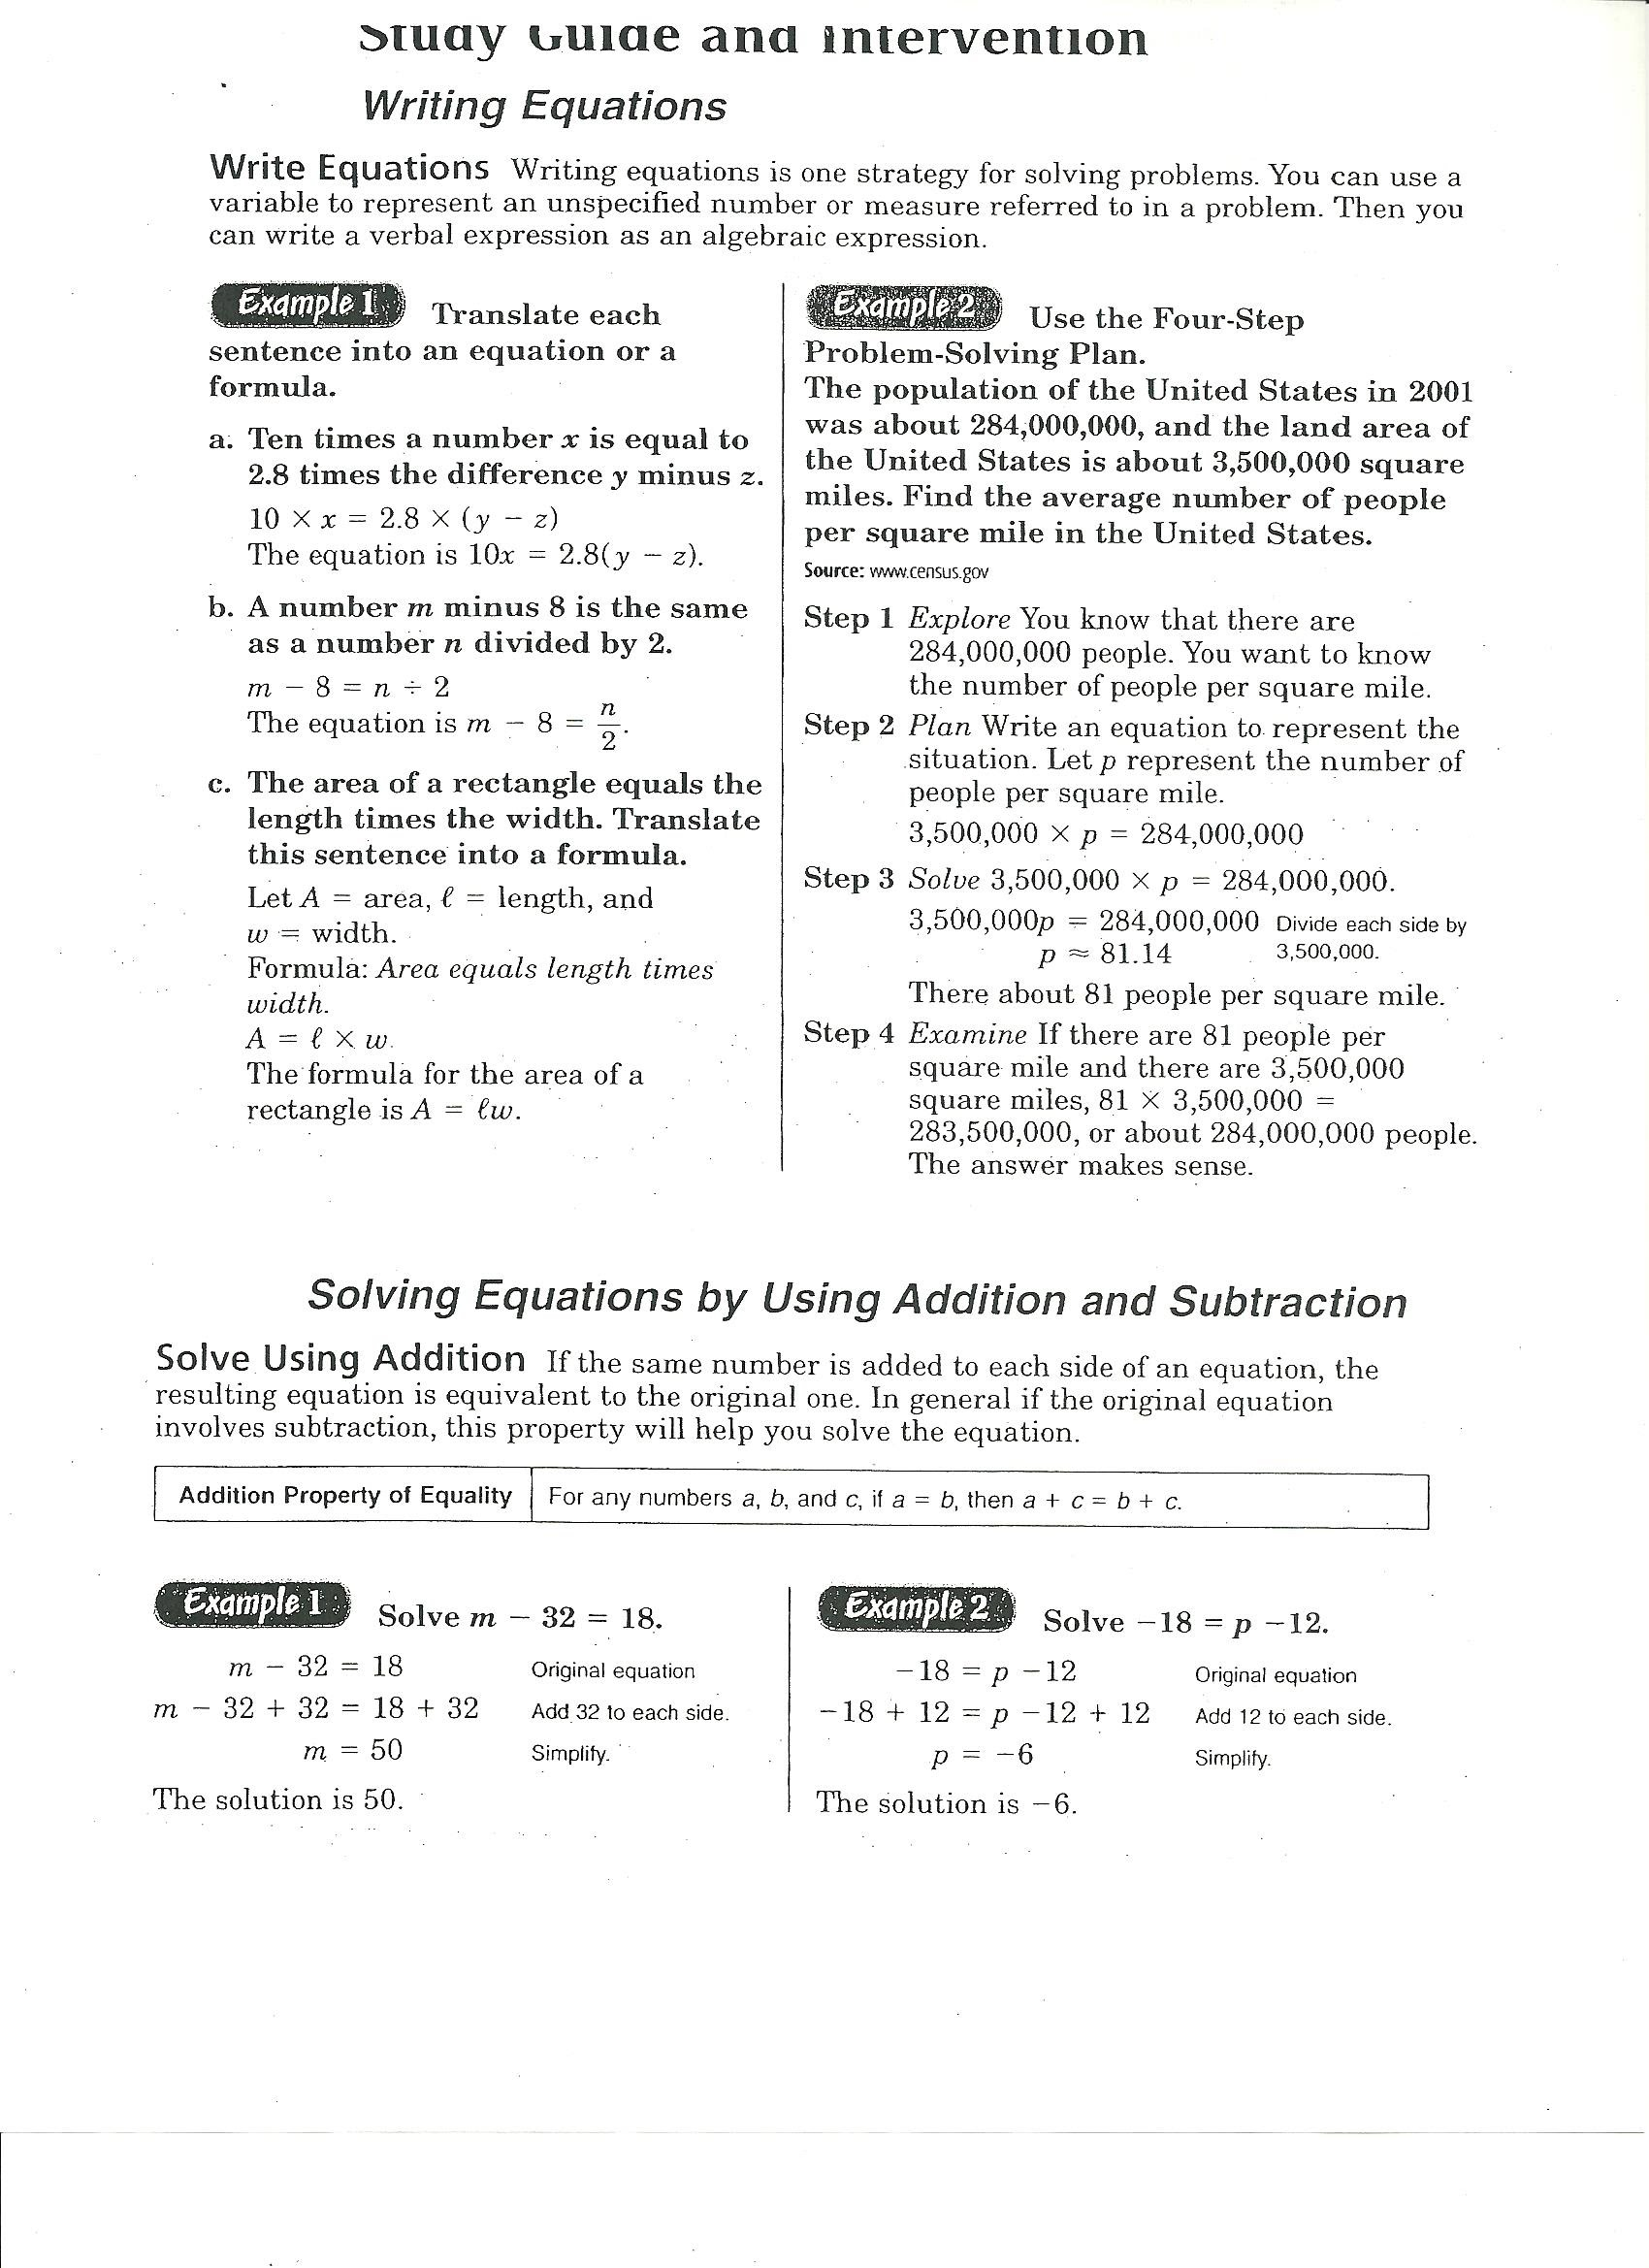 Solving Linear Equations Study Guide